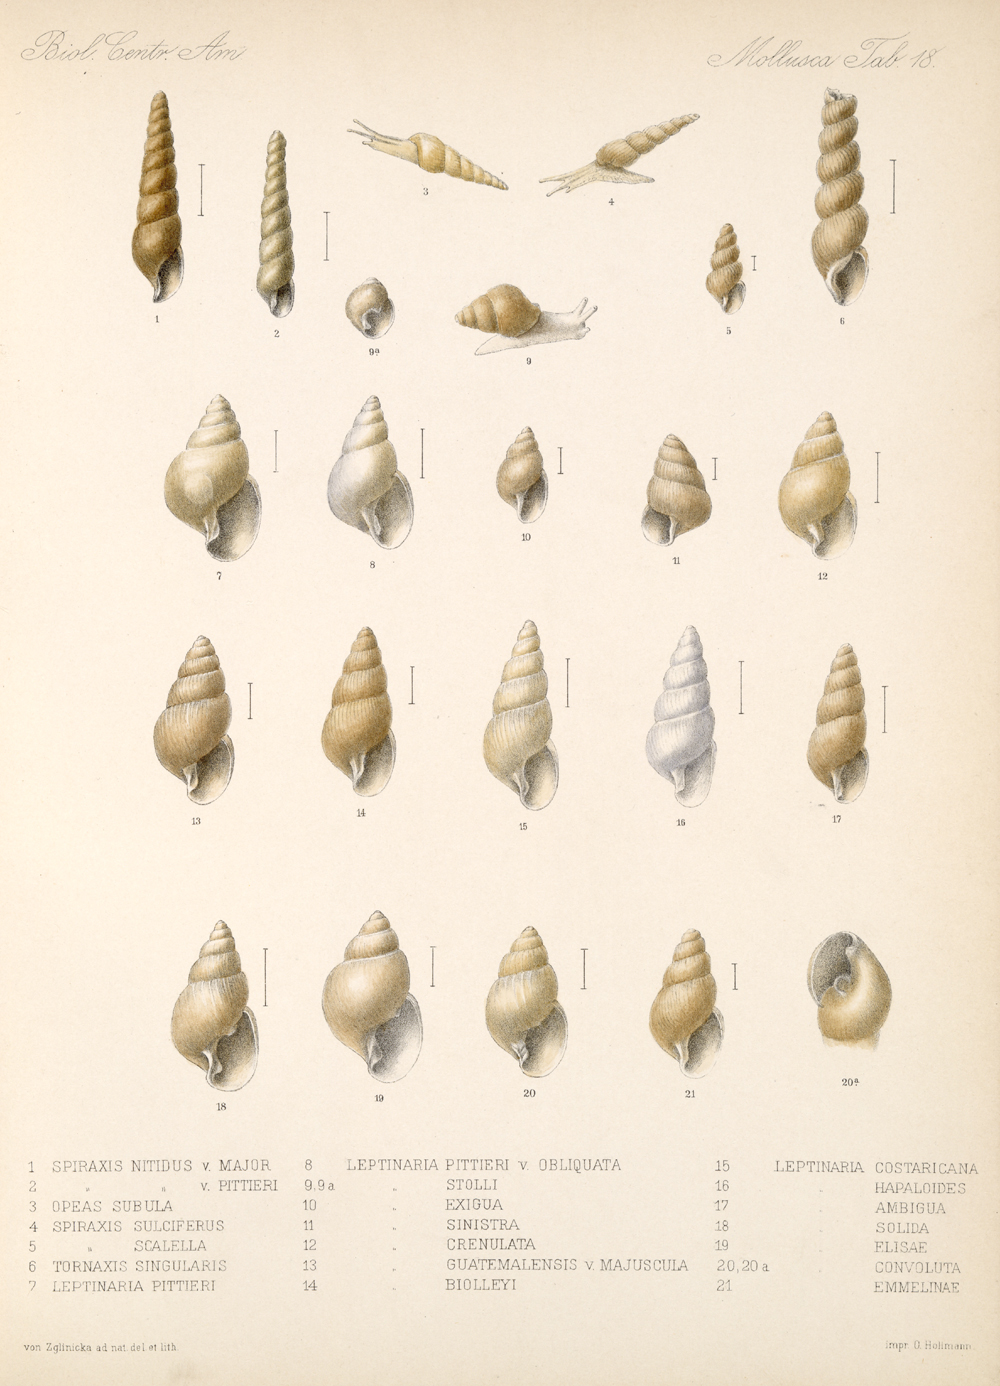 Shells and Mollusks,  Image number:bca_06_00_00_745